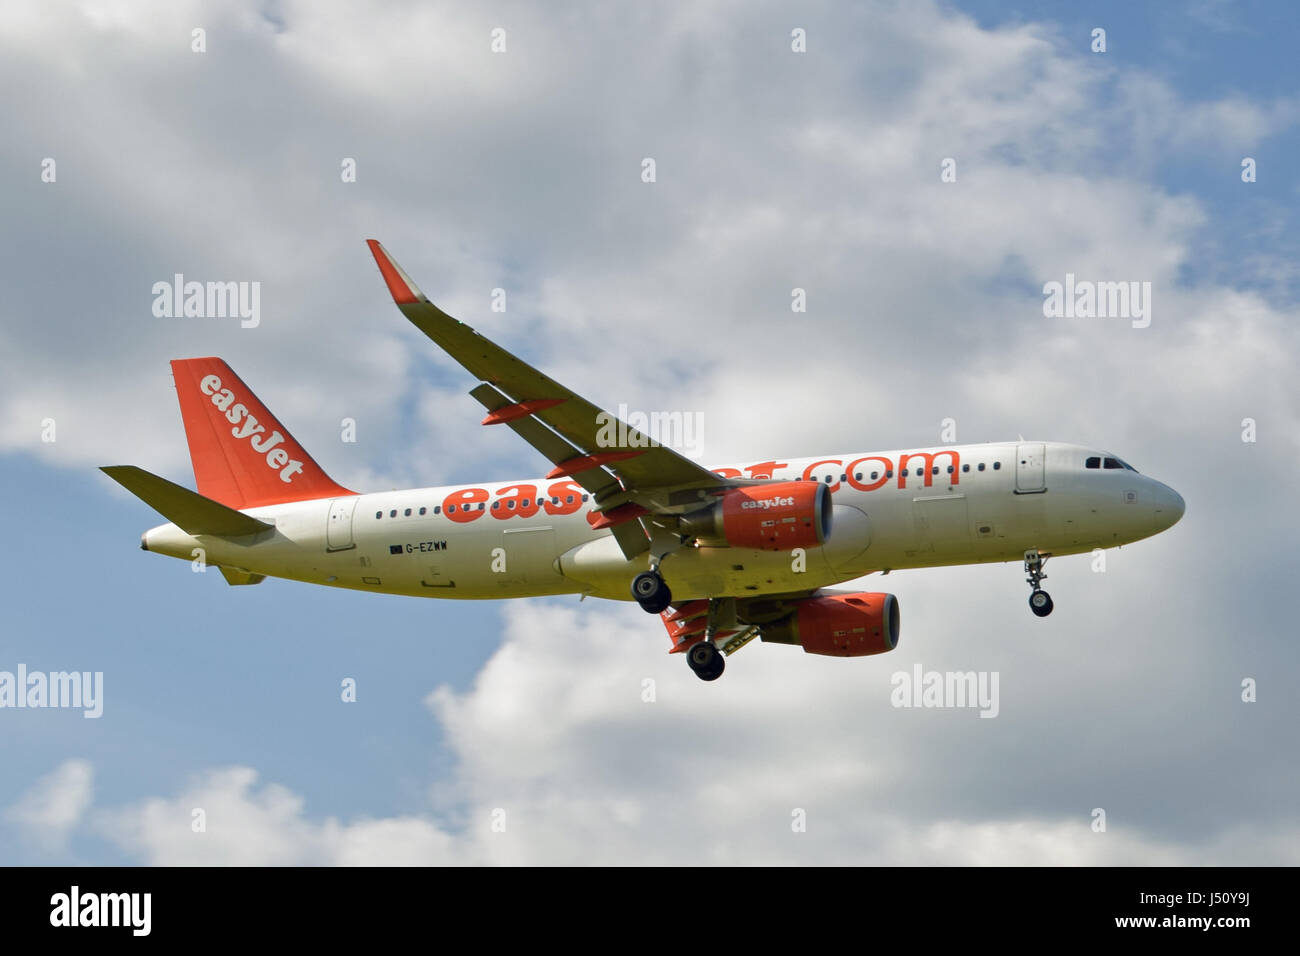 G-EZWW easyJet Airbus A320-200 - cn 6188 on final approach to LGW London Gatwick airport - Stock Image